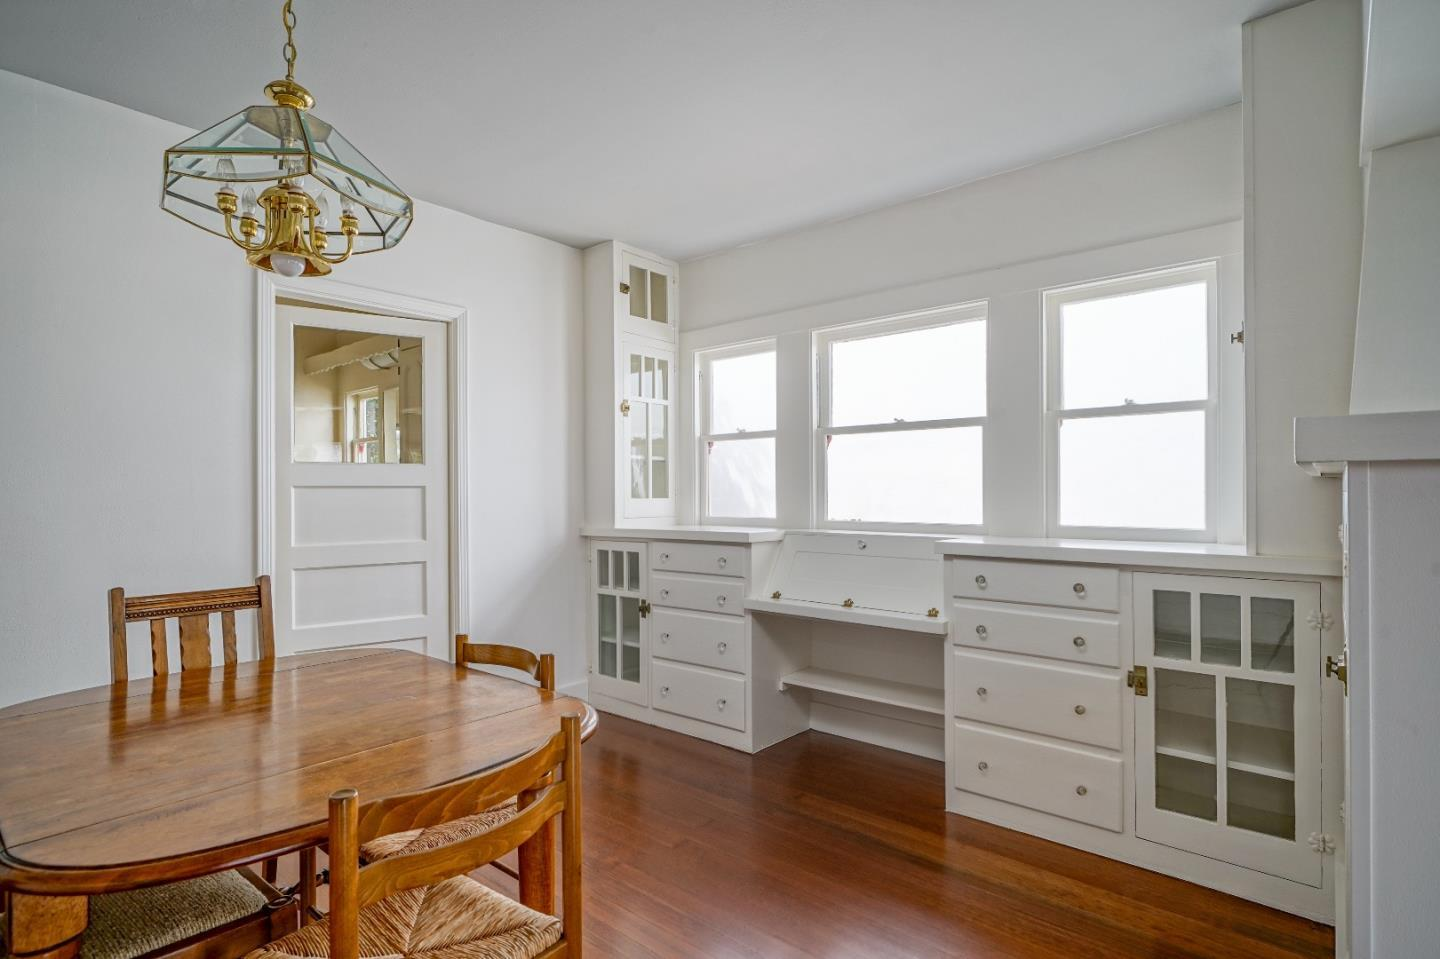 Ideal Two-Units in Pacific Grove